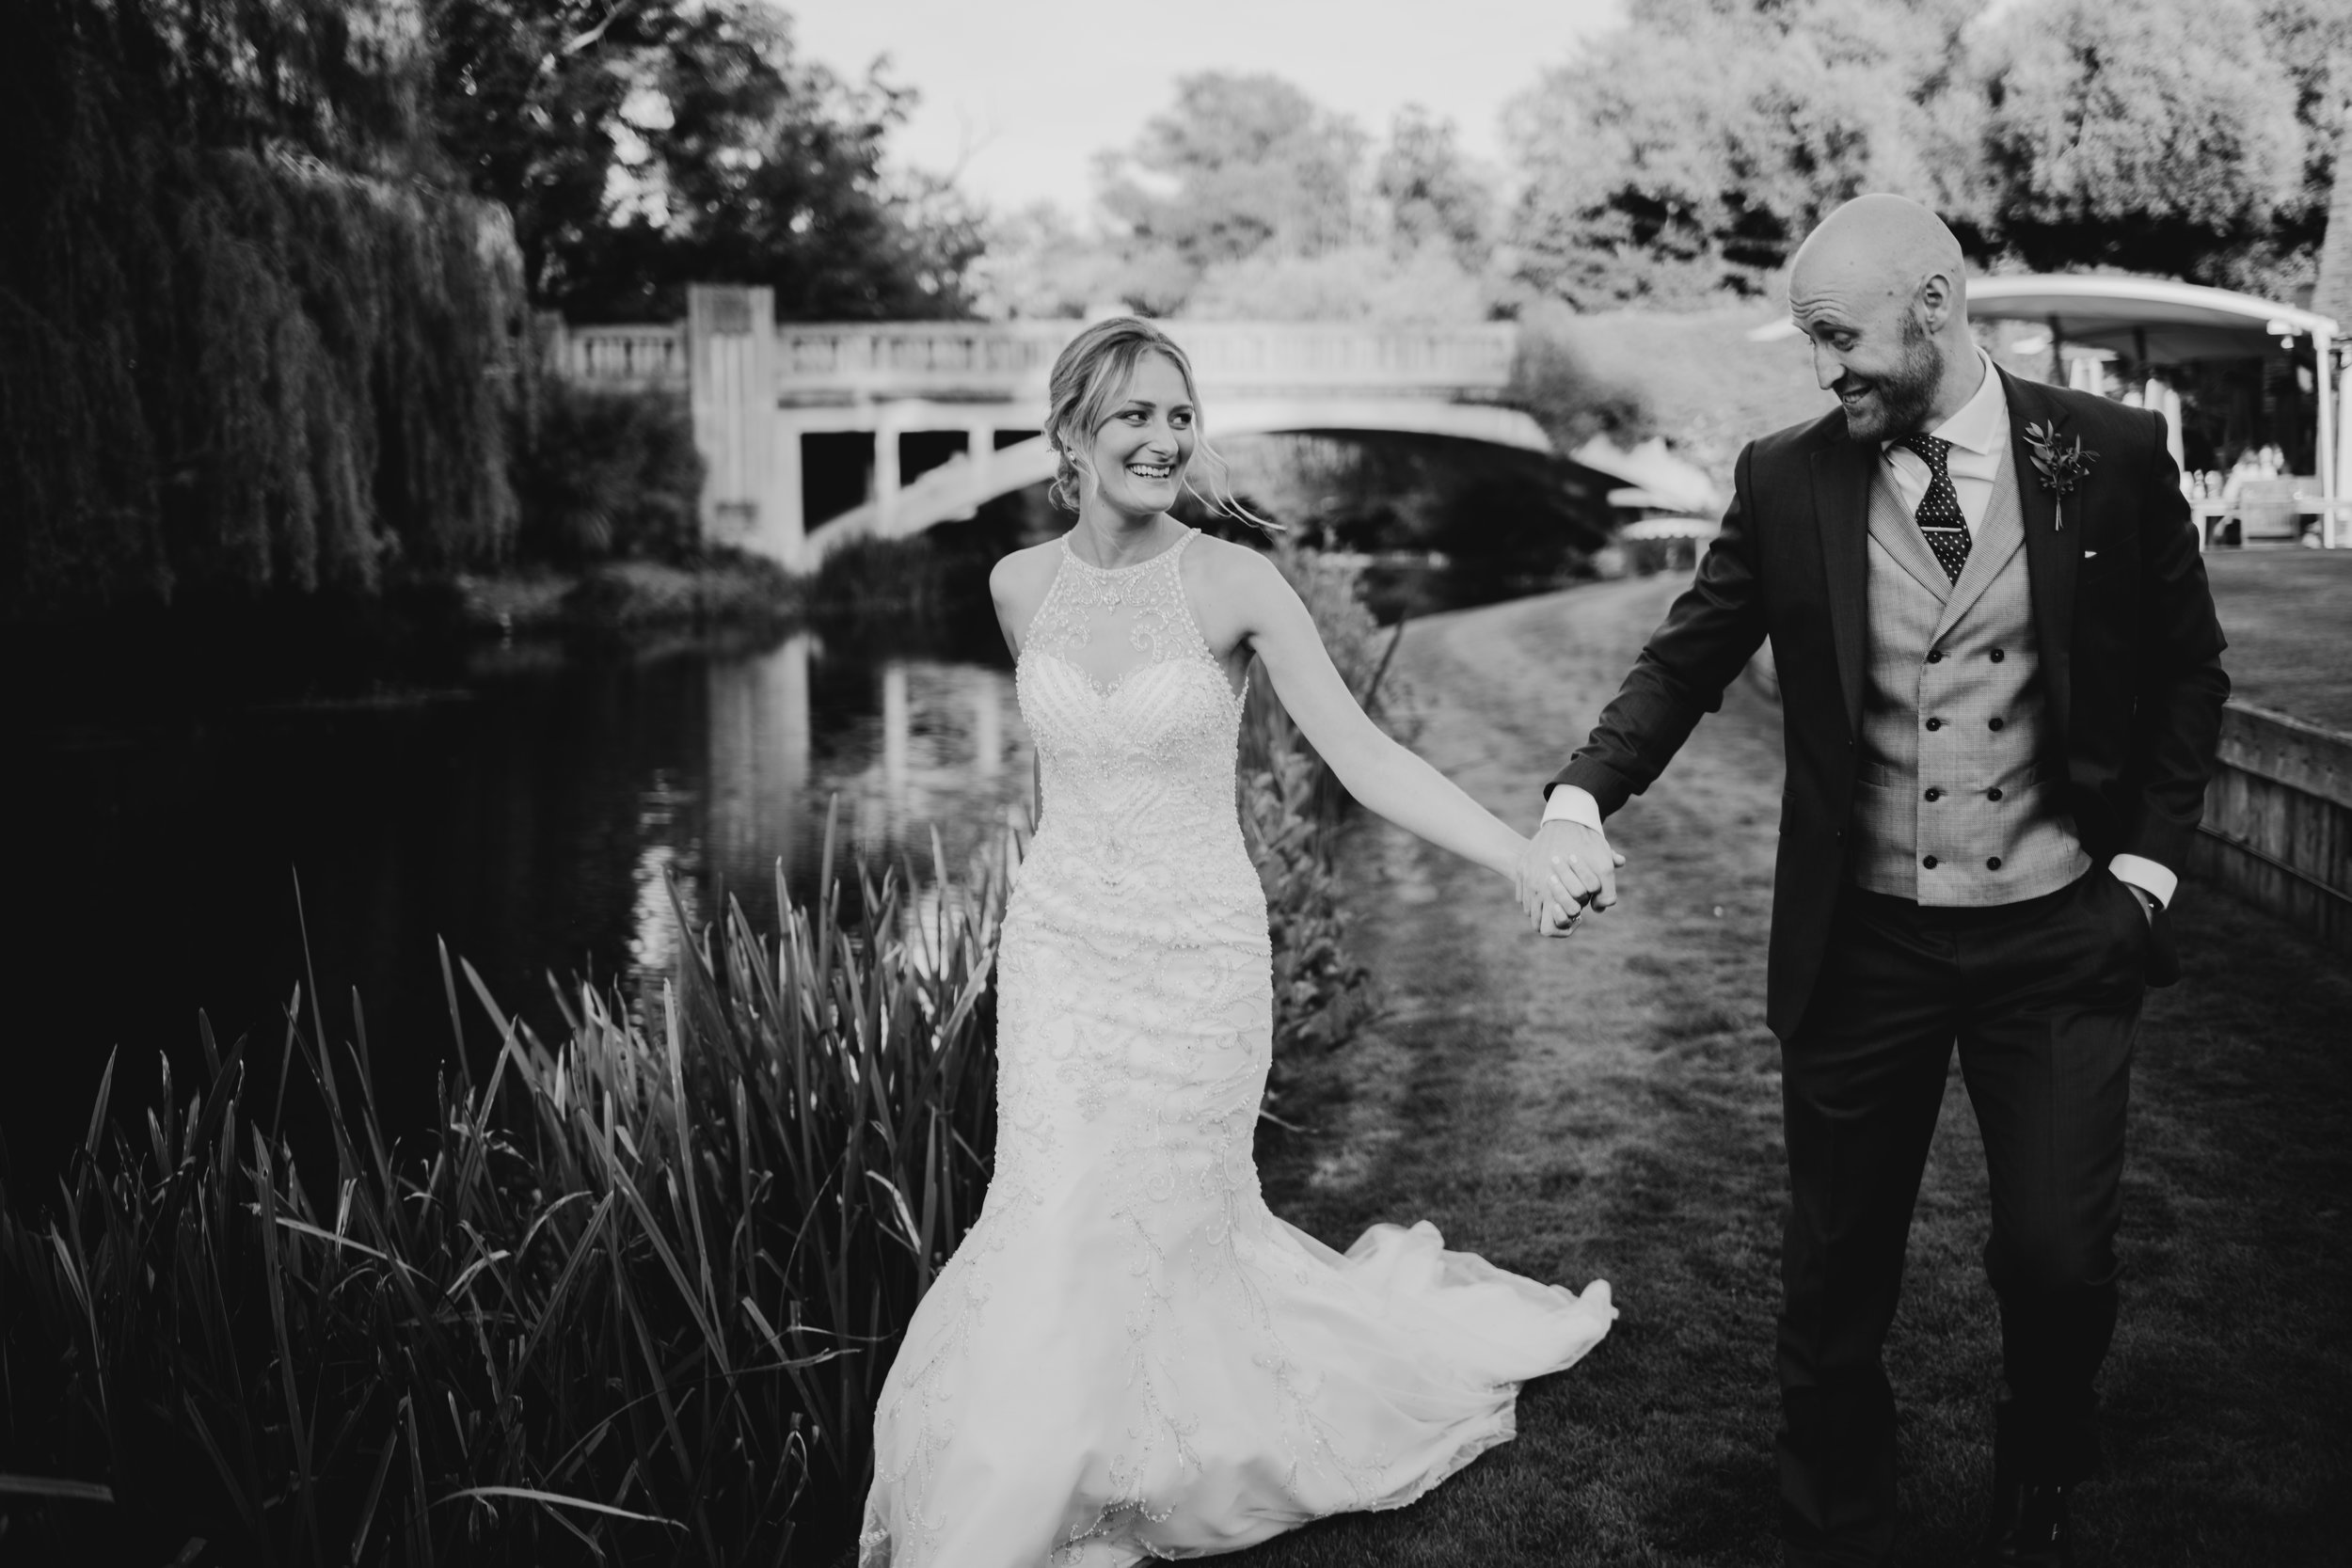 Essex wedding photography - Danielle and George